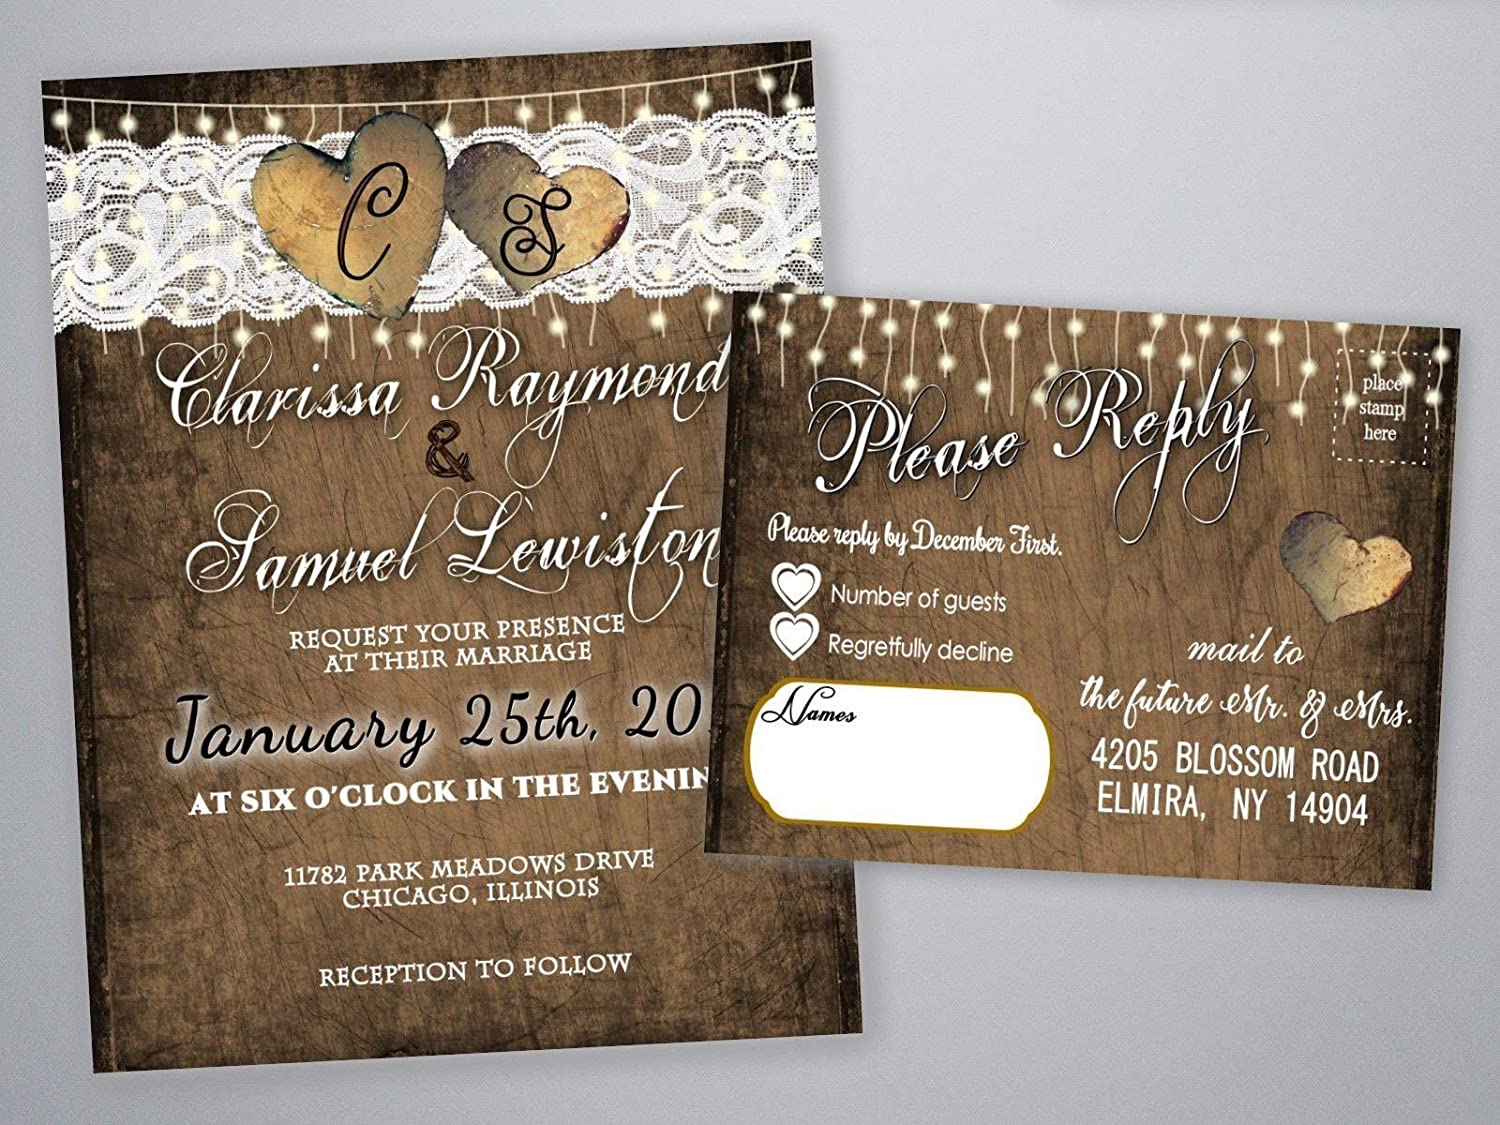 Personalized Wedding Invitations.Personalized Wedding Invitations Rustic Heart With Rsvp Cards Set Of 125